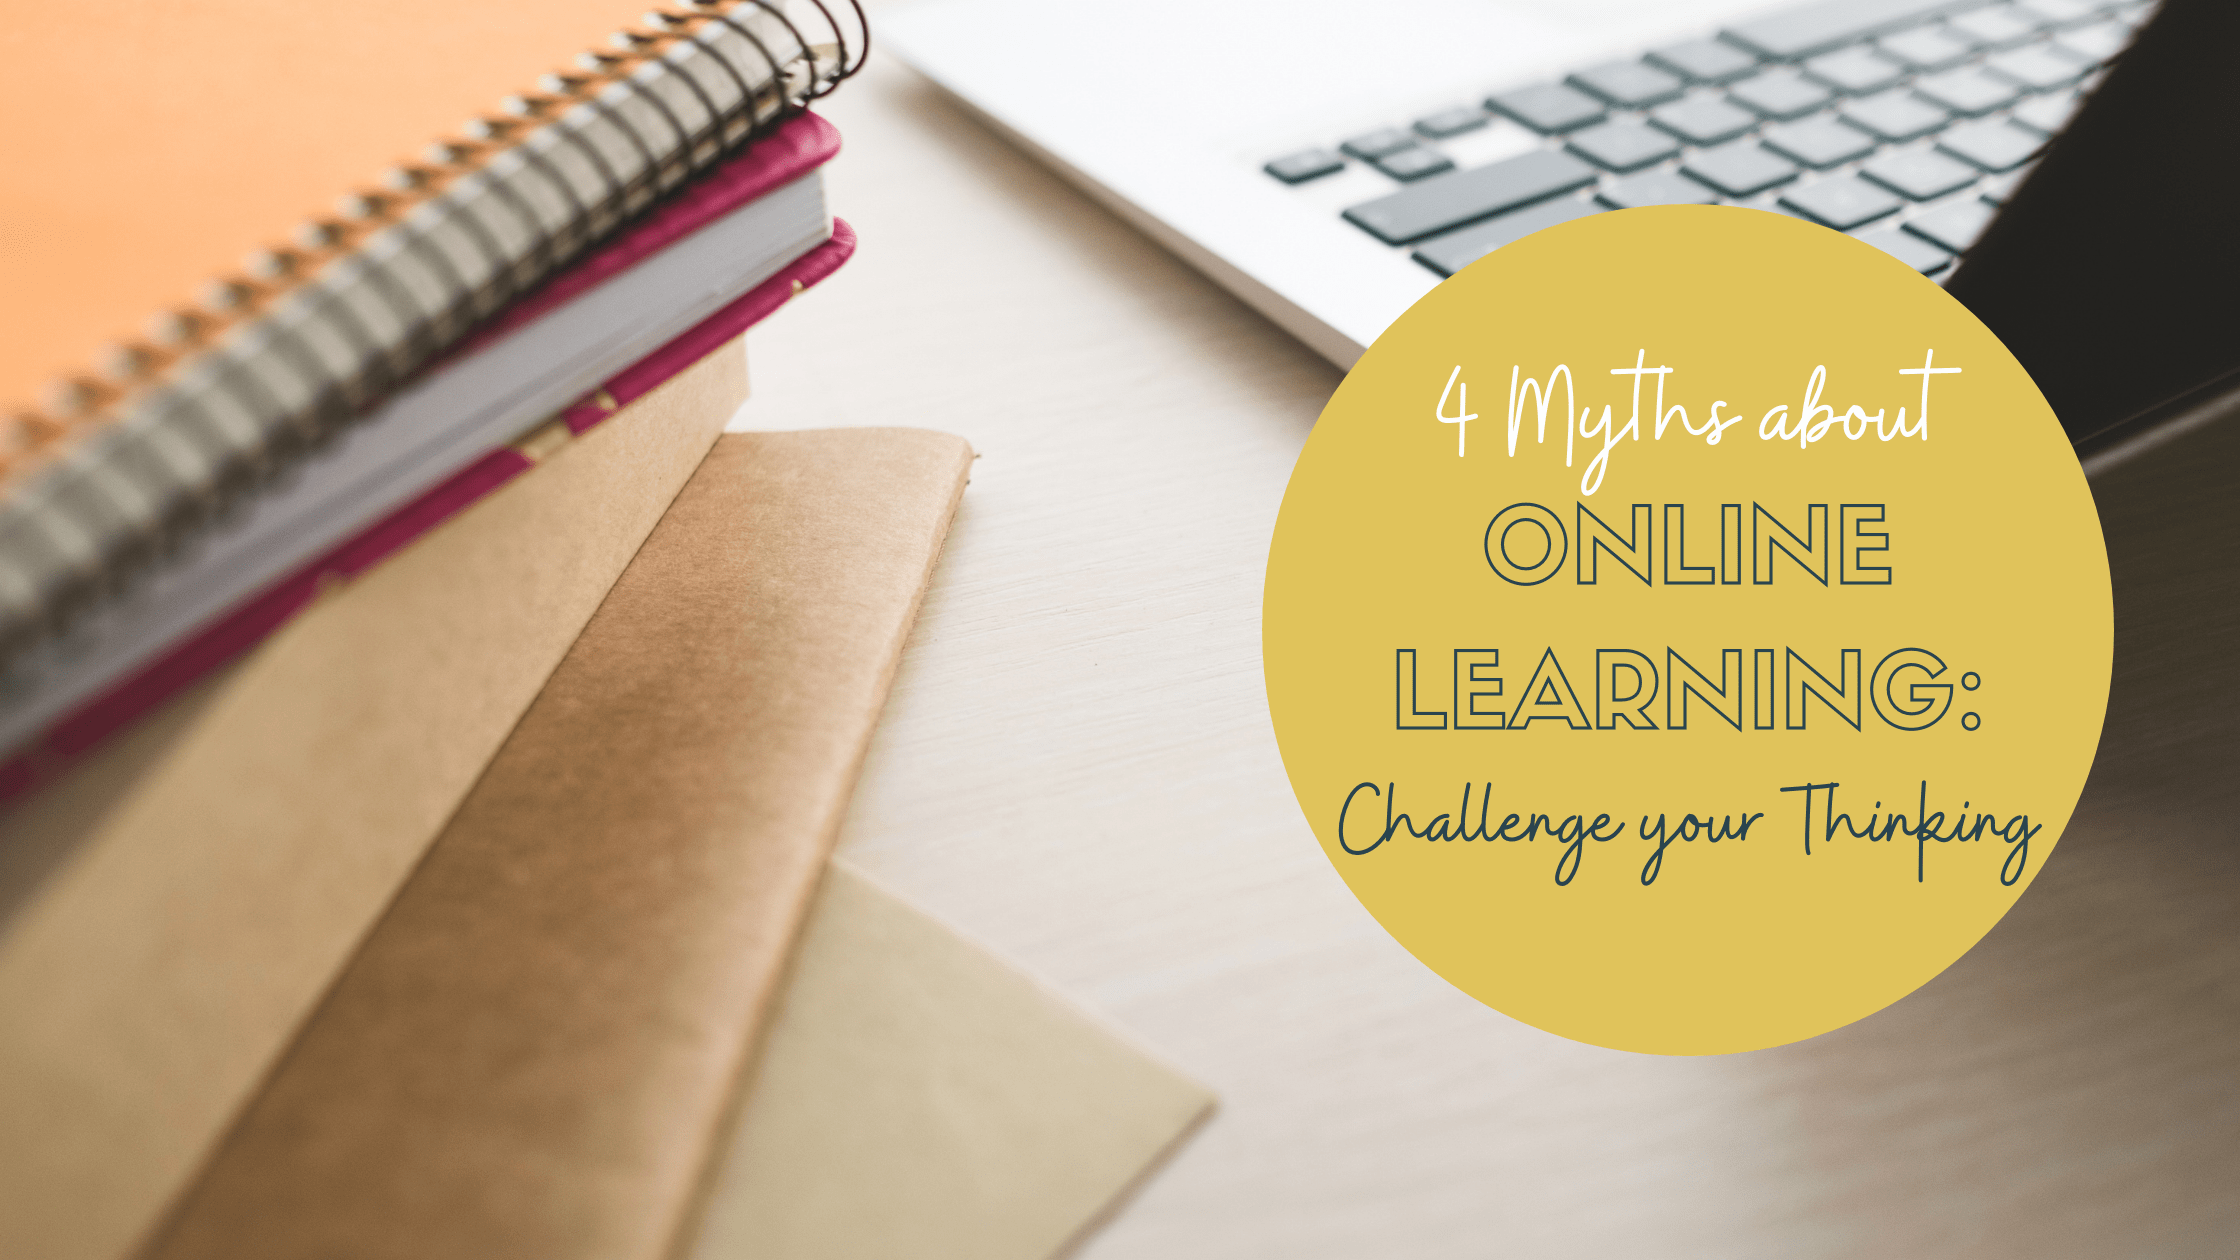 4 Myths about Online Learning: Challenge your Thinking